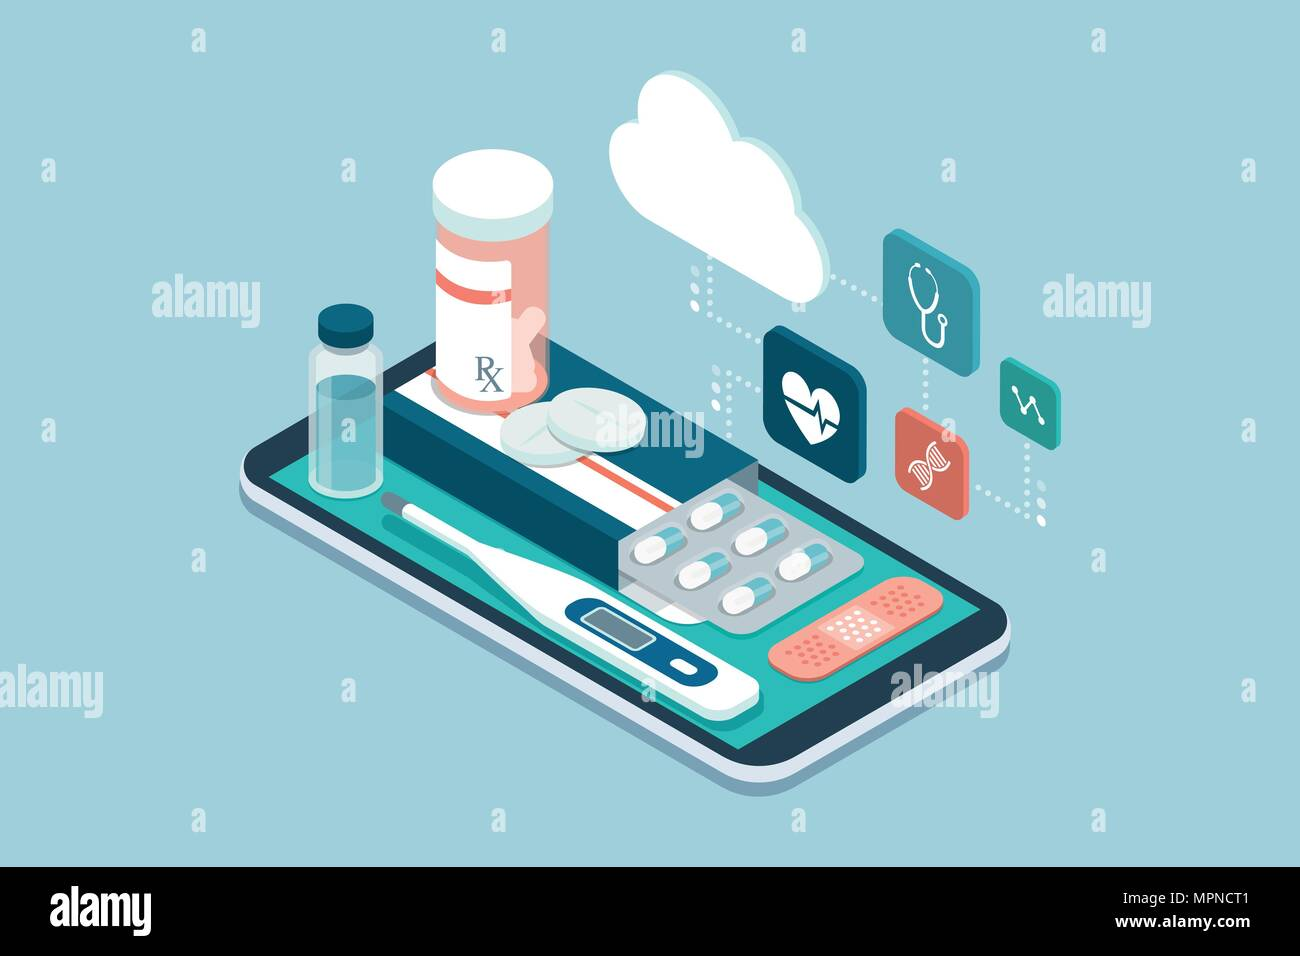 Medicine, healthcare and therapy app: prescription drugs, first aid and medical diagnosis equipment on a smartphone with icons - Stock Image